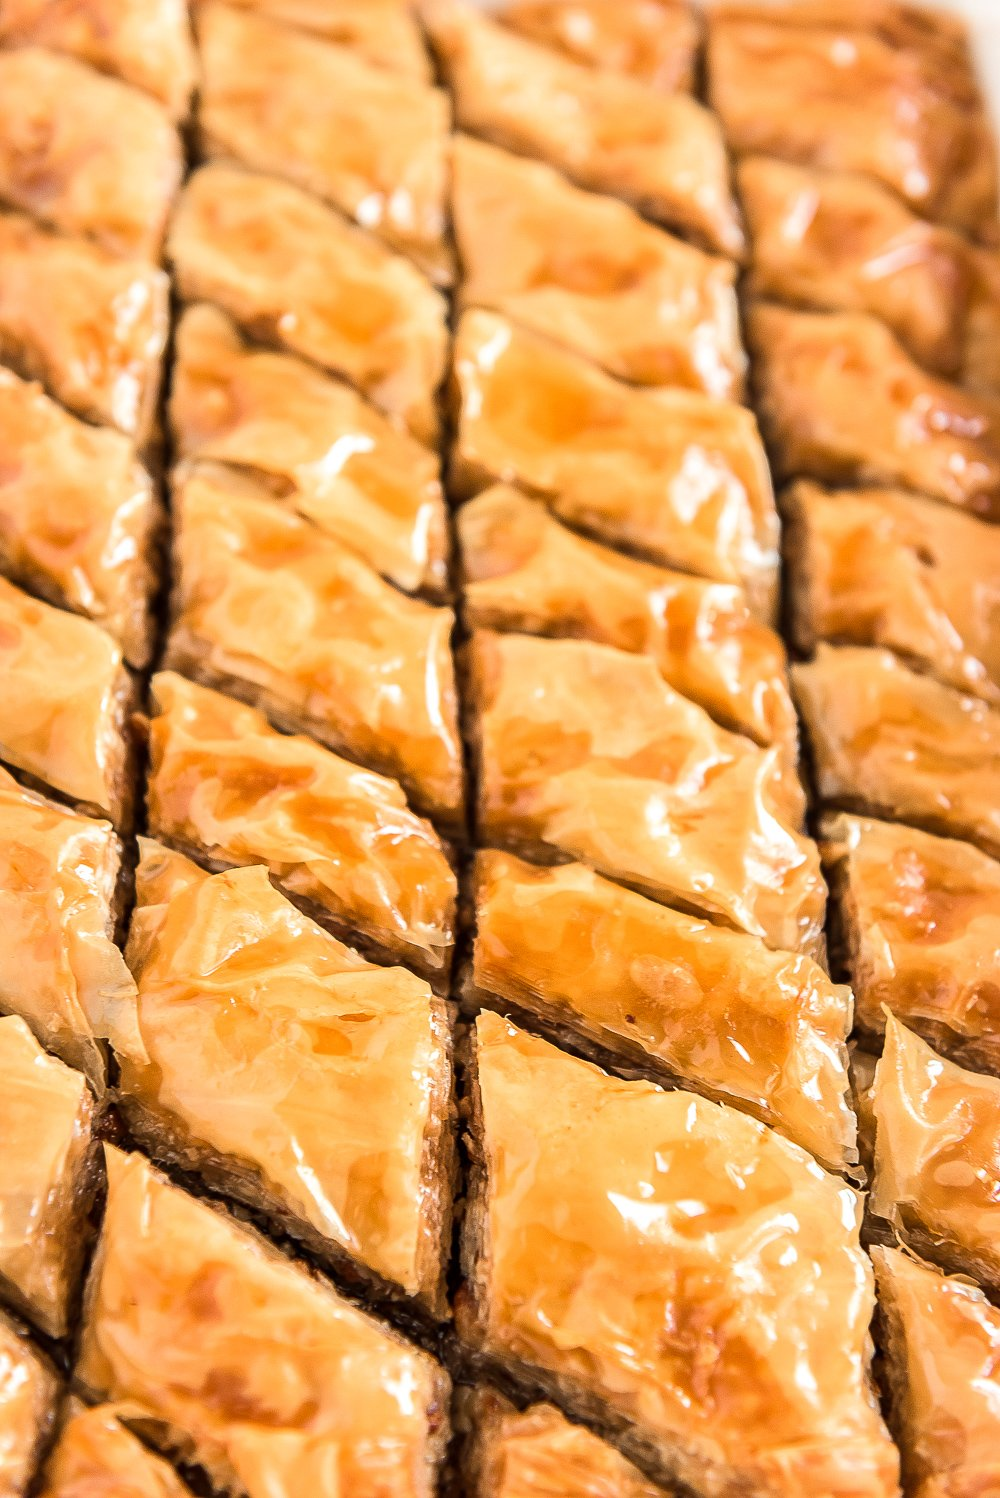 Close up photo of sliced baklava still in baking dish.